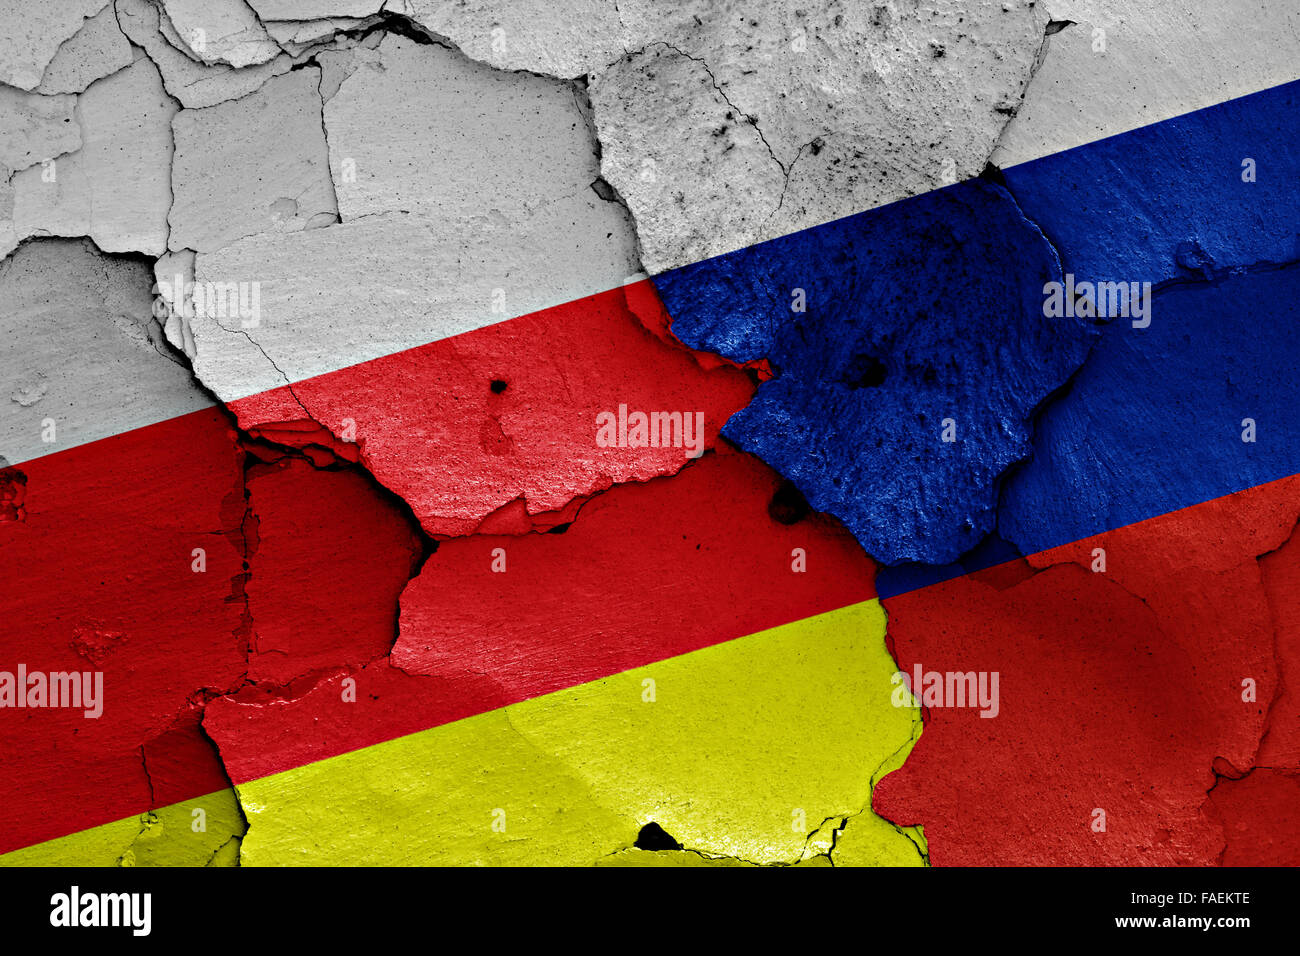 flags of North Ossetia-Alania and Russia painted on cracked wall - Stock Image